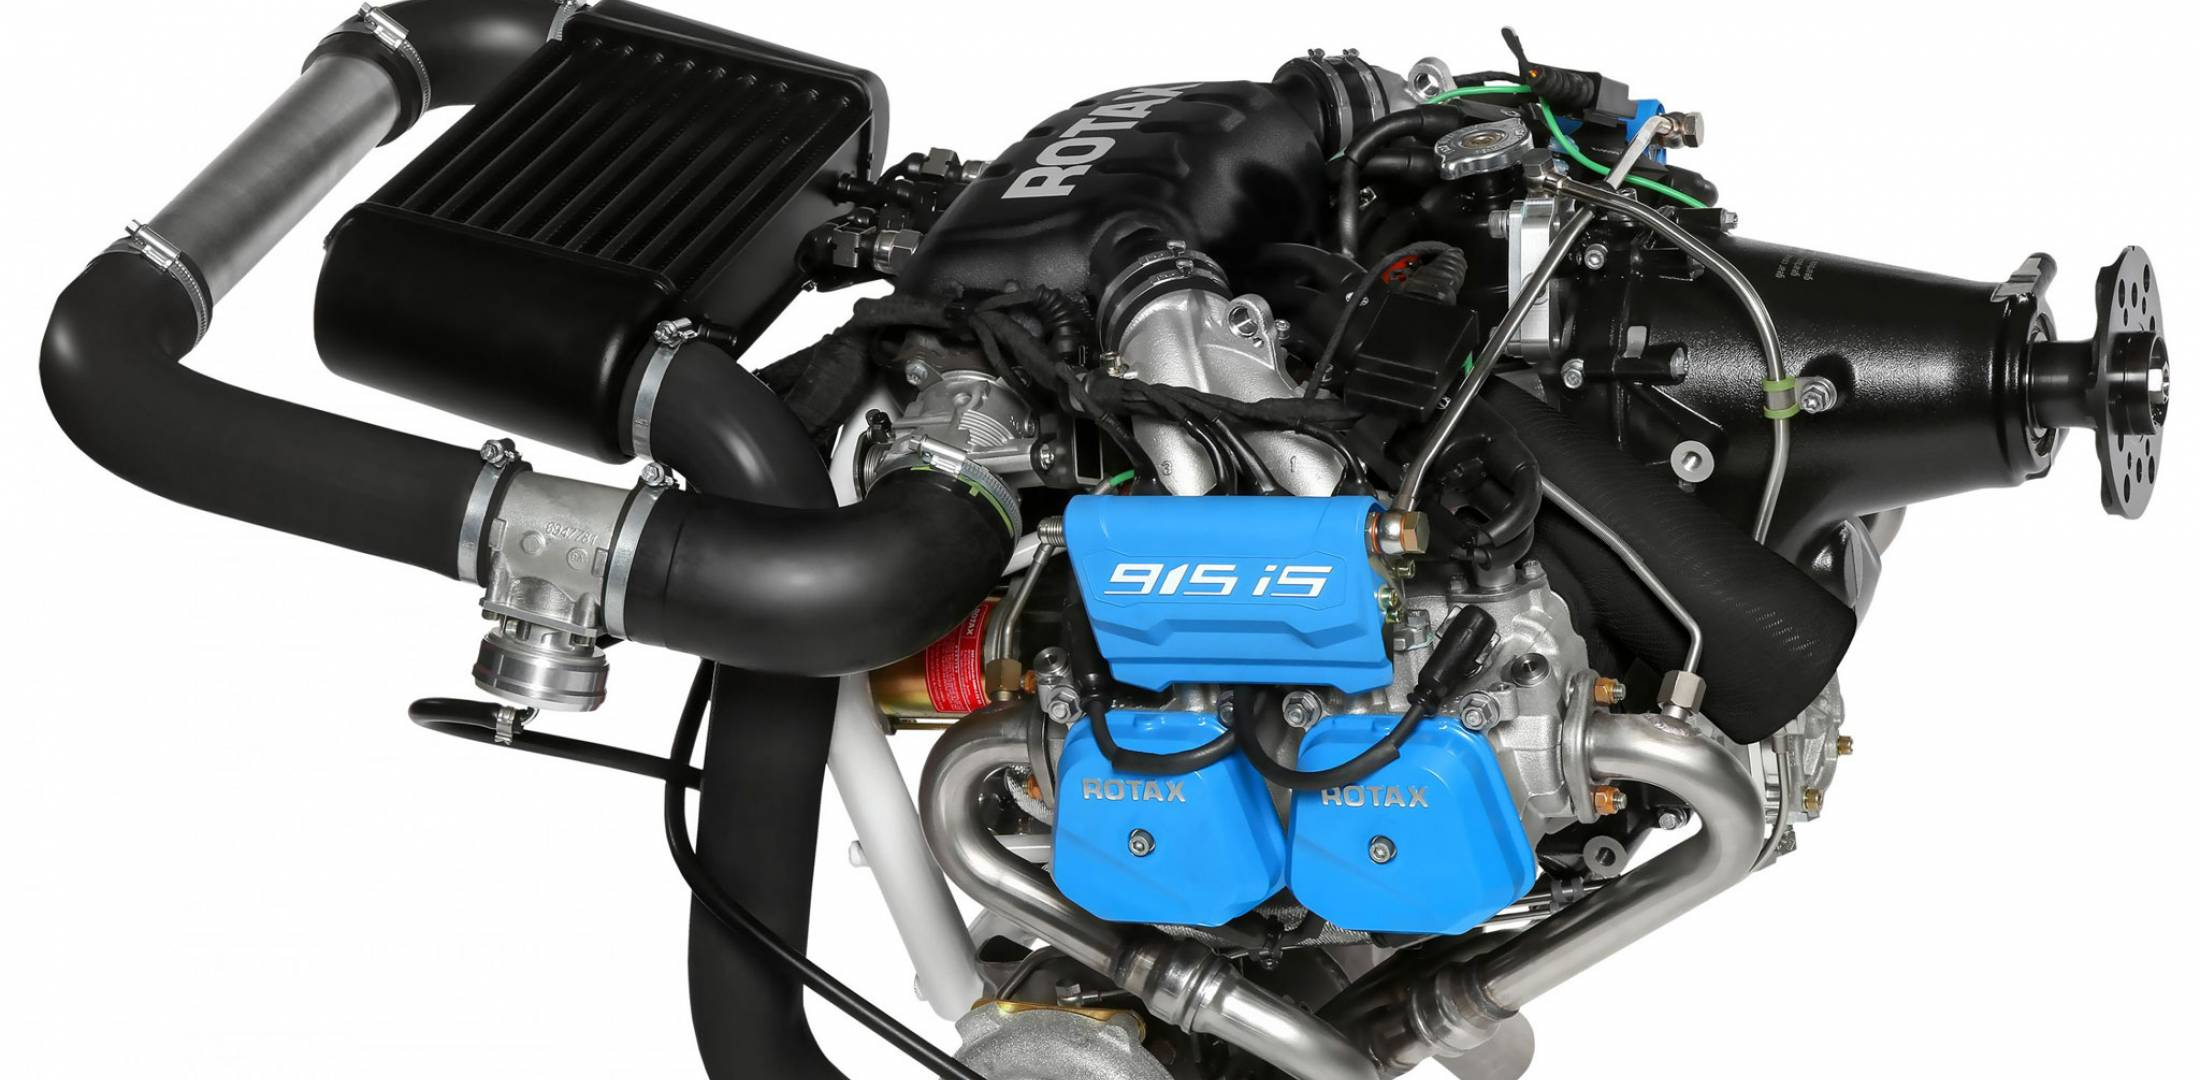 Rotax recently began deliveries of its turbocharged Rotax 915 iS. (Photo:  Rotax)